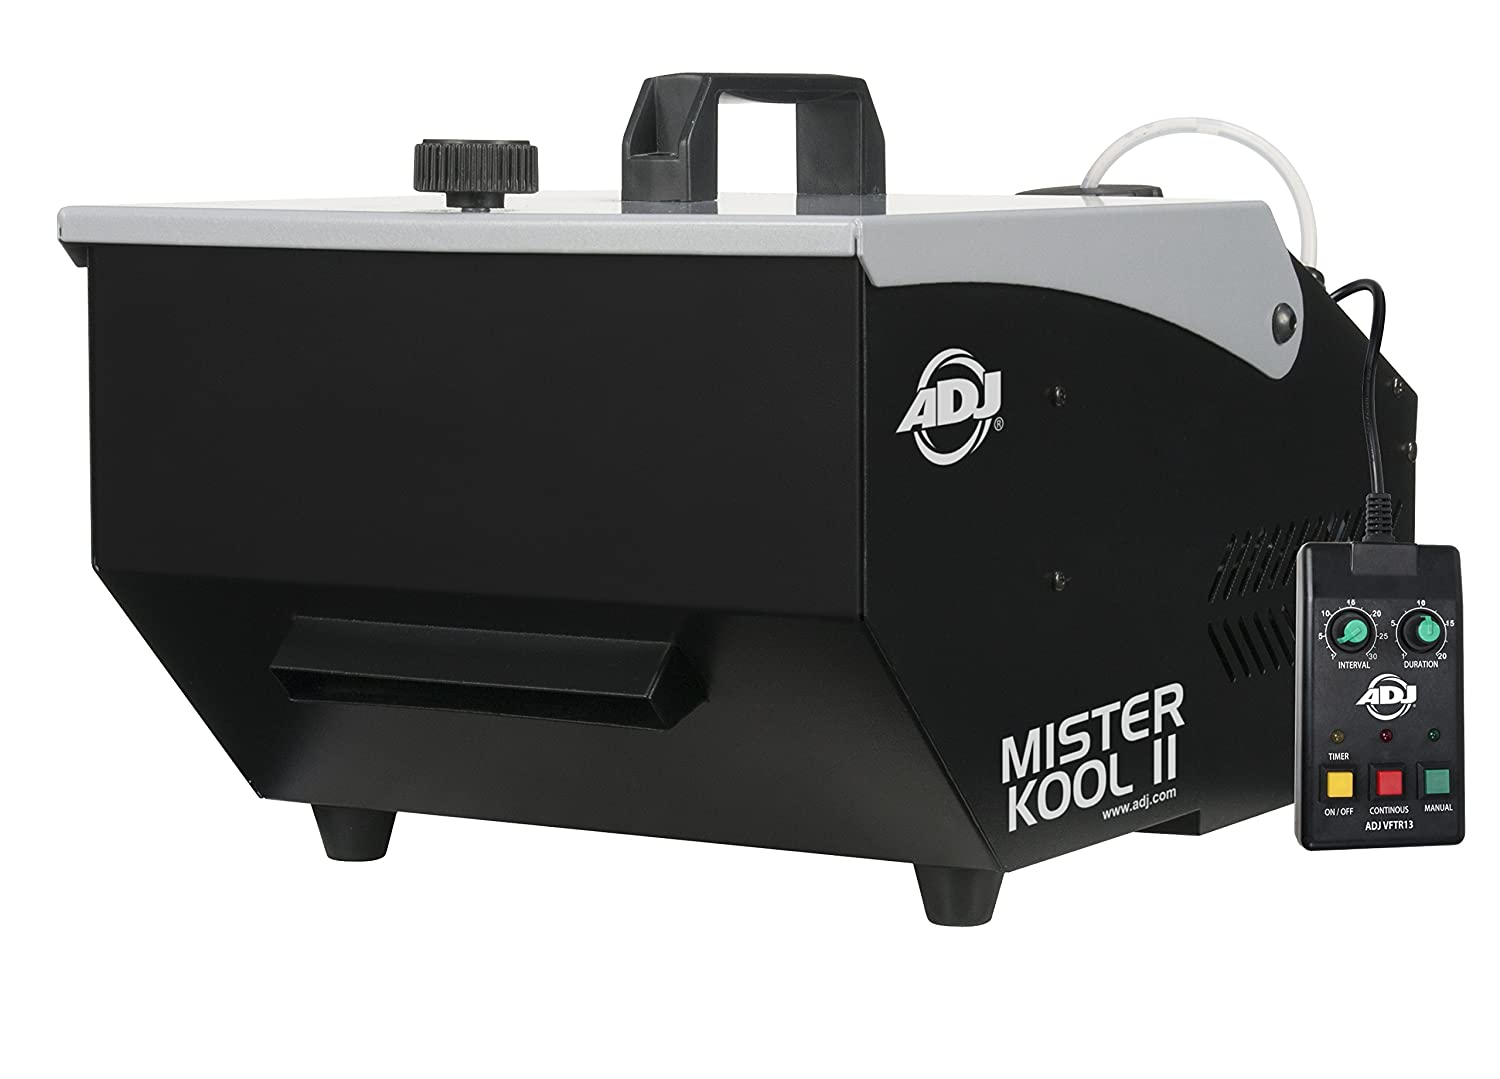 ADJ Mister Kool II Grave Yard Low Lying Water Based Fog Machine ADJ Products